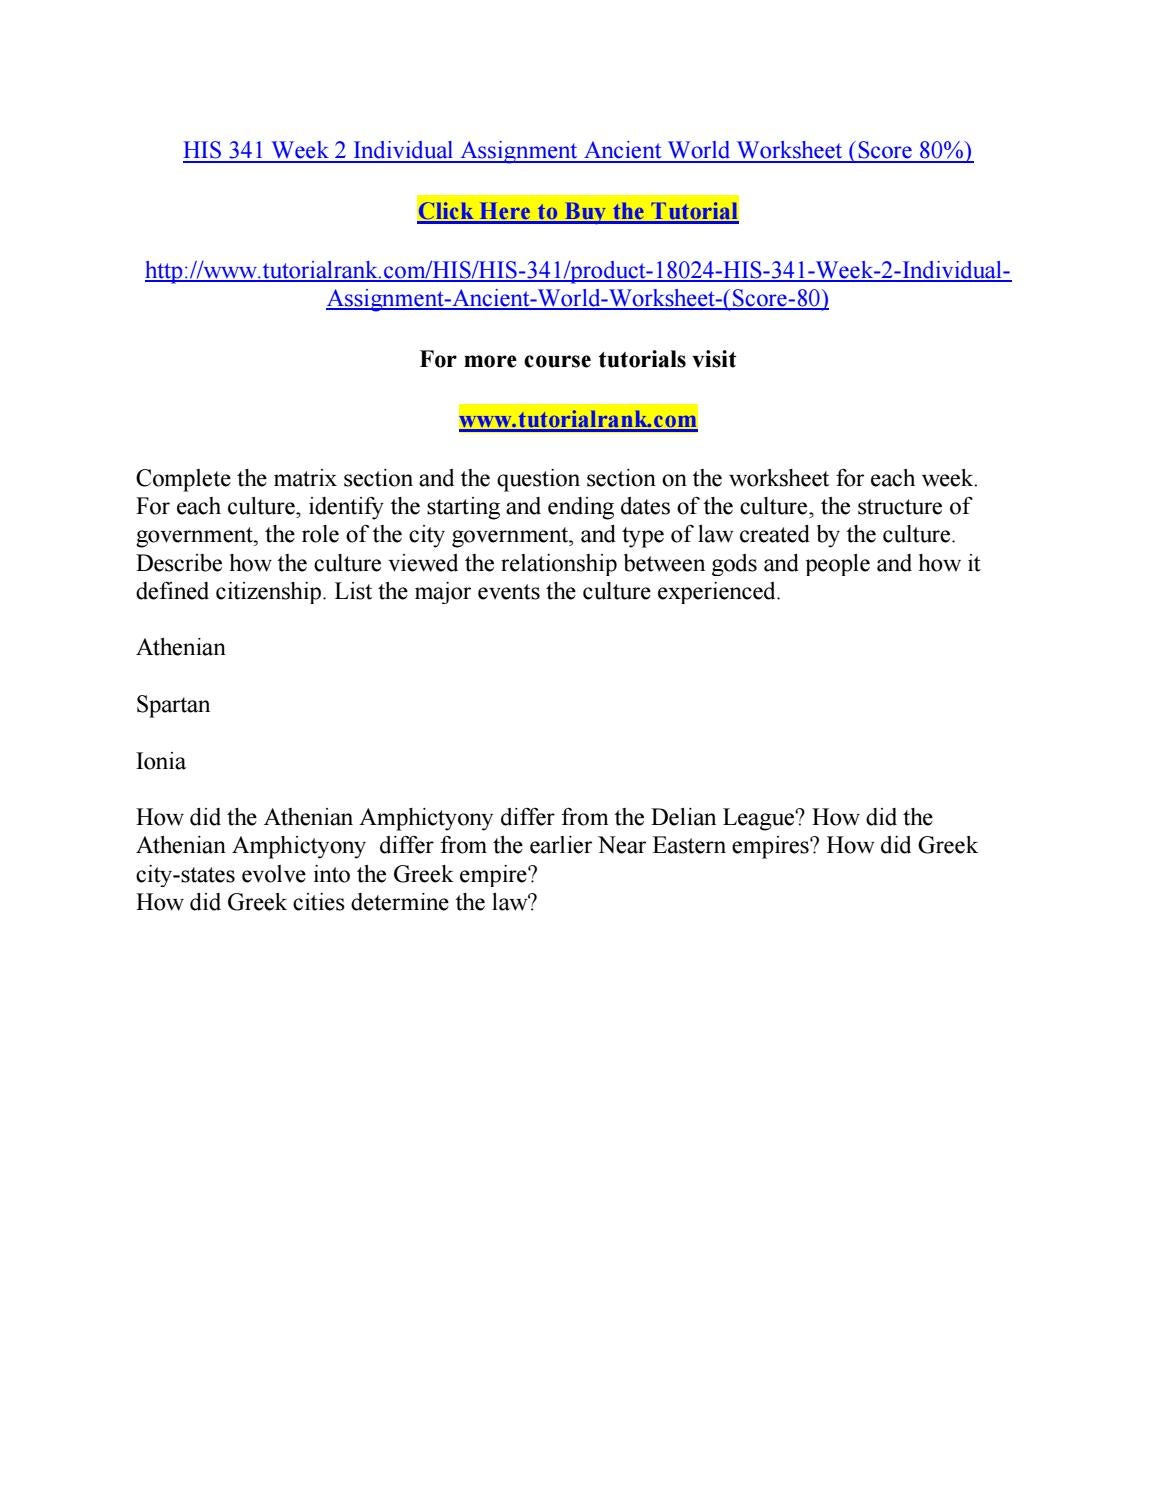 His 341 week 2 individual assignment ancient world worksheet ...